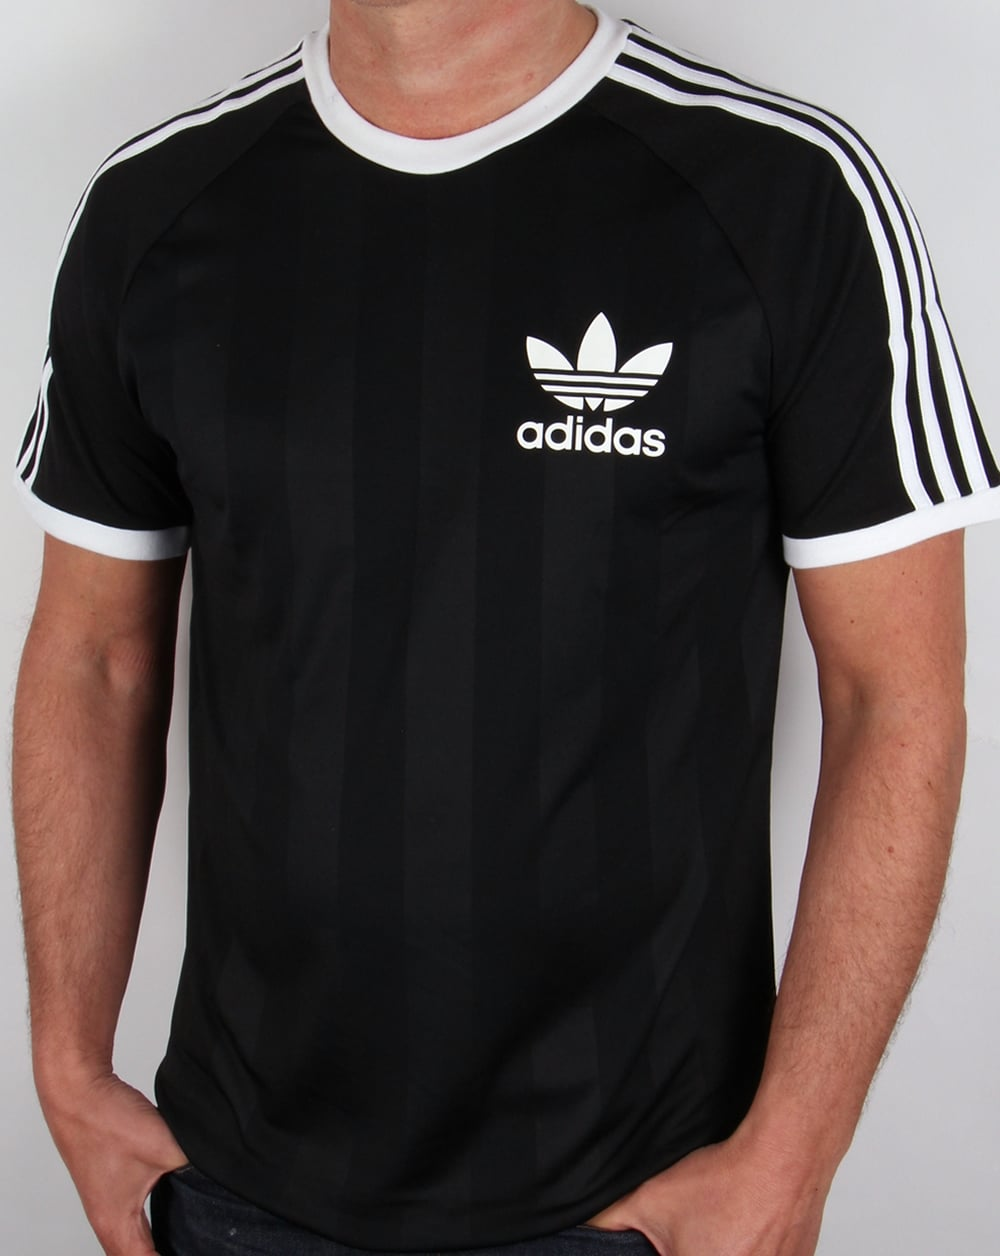 Adidas retro t shirt black tee 3 stripes old skool original for Adidas lotus t shirt